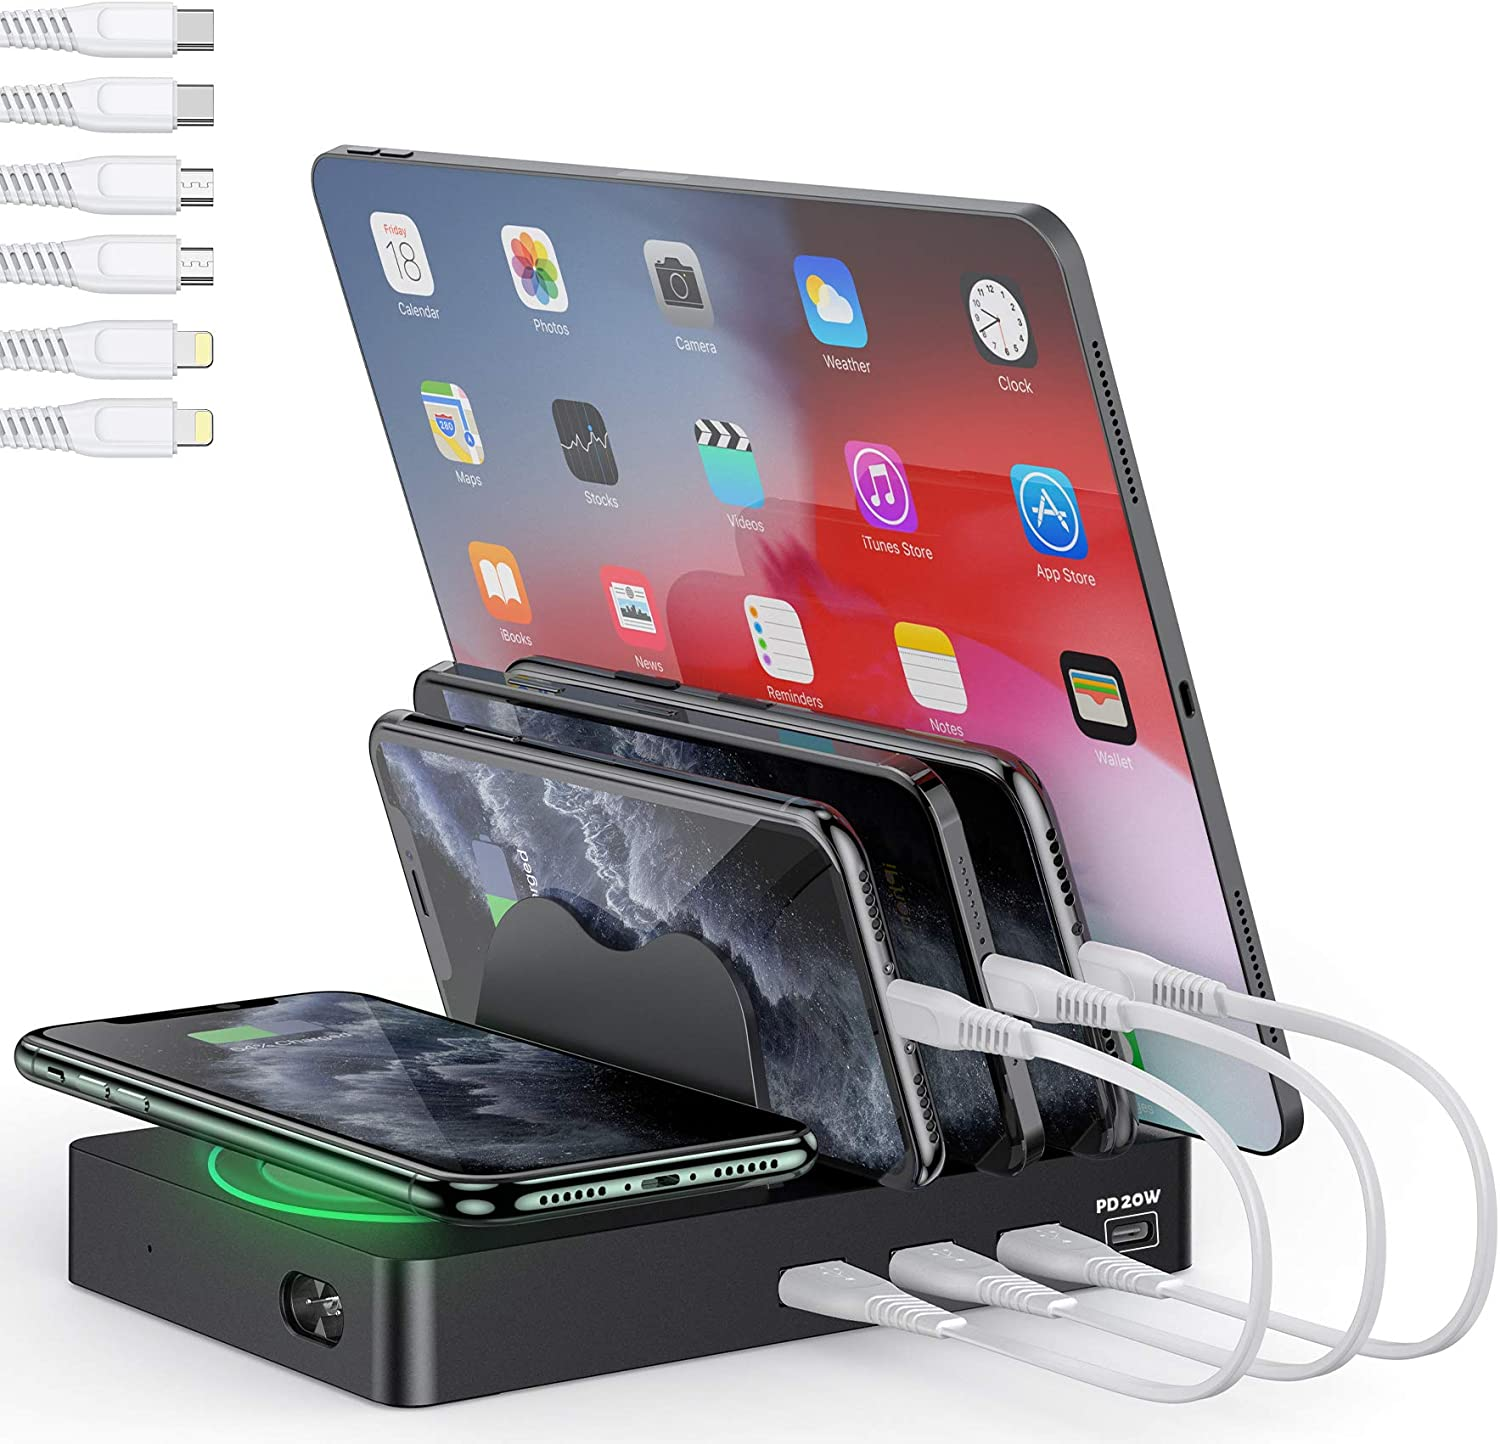 undassenk Fast Charging Station for Multiple Devices, 50W 4 Port Quick Charger Dock (1 PD 20W USB-C and 3 USB-A) with Wireless Charging, Compatible with Apple iPhone/iPad/Samsung/Android